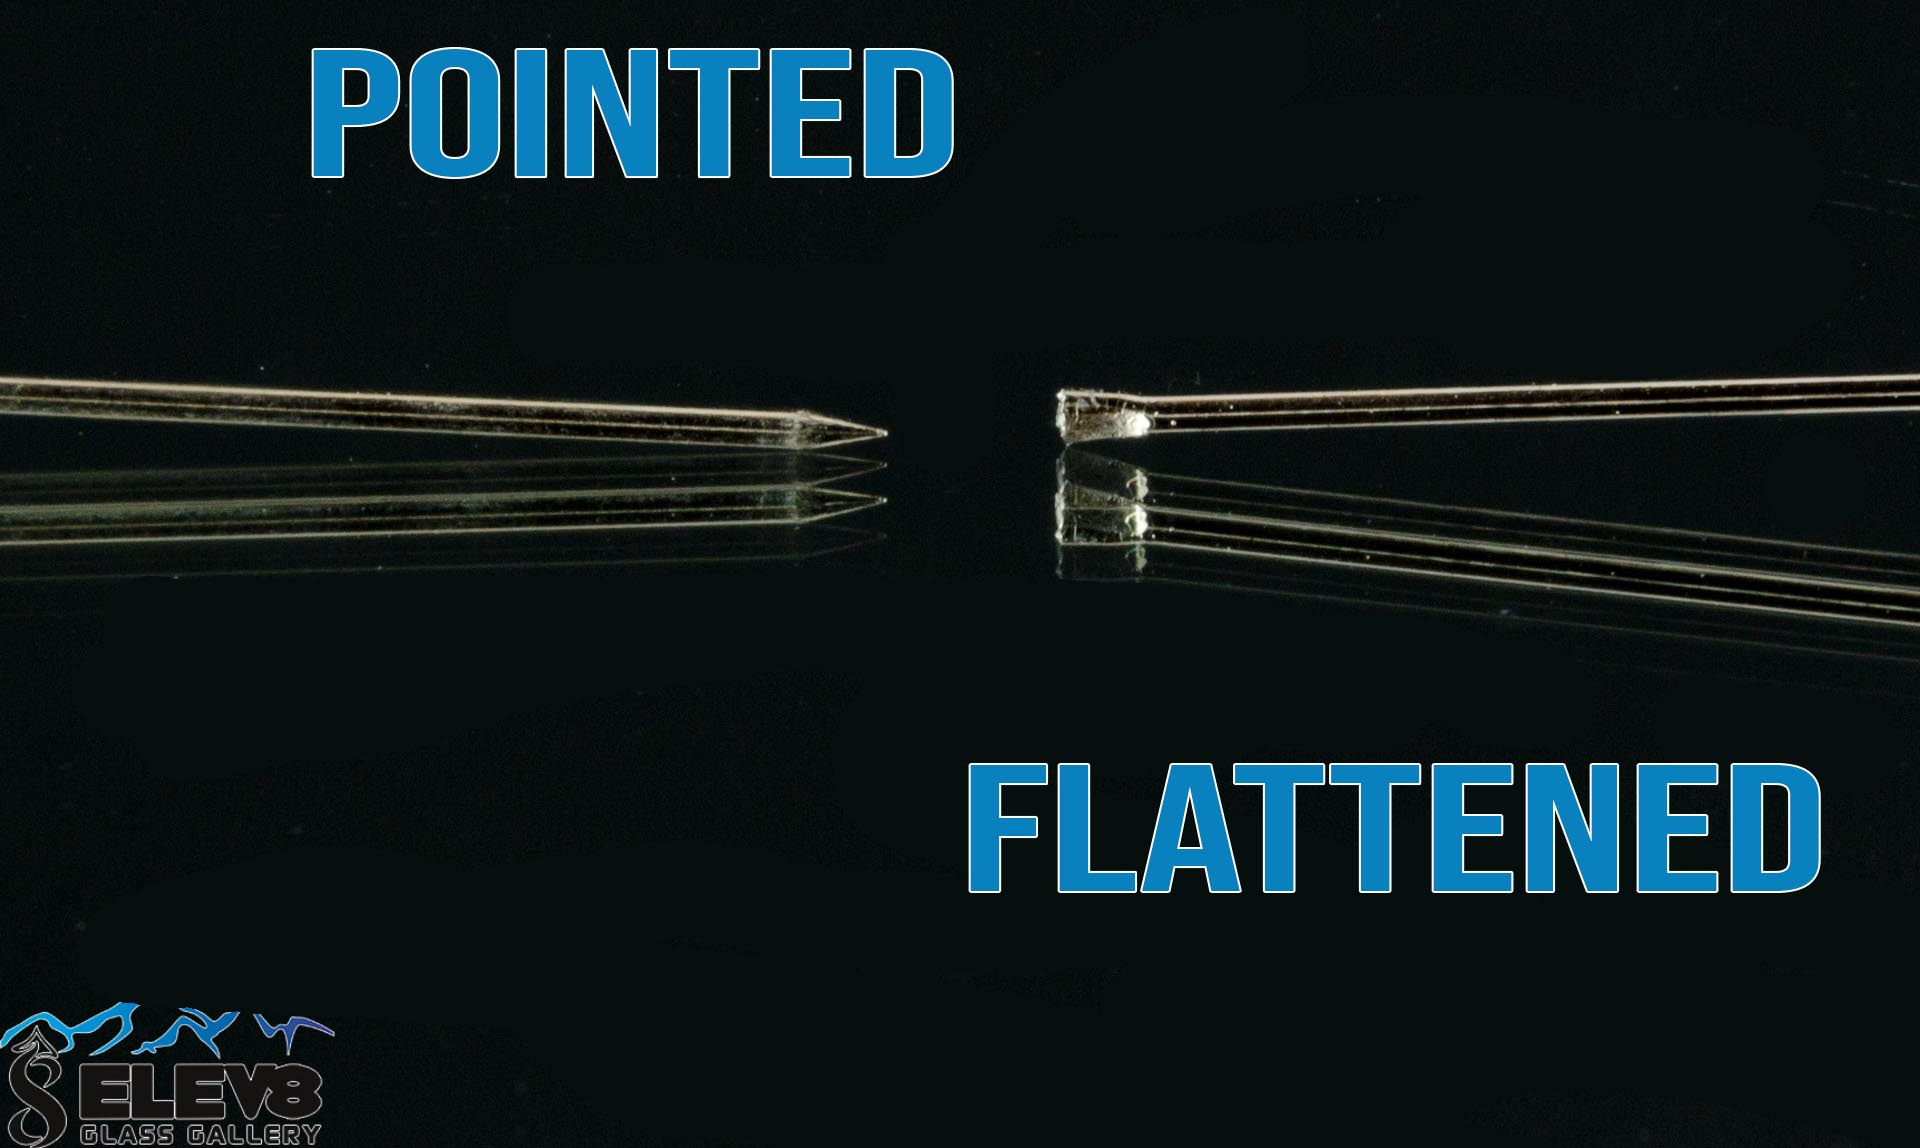 pick-tip-pointed-and-flattened.jpg